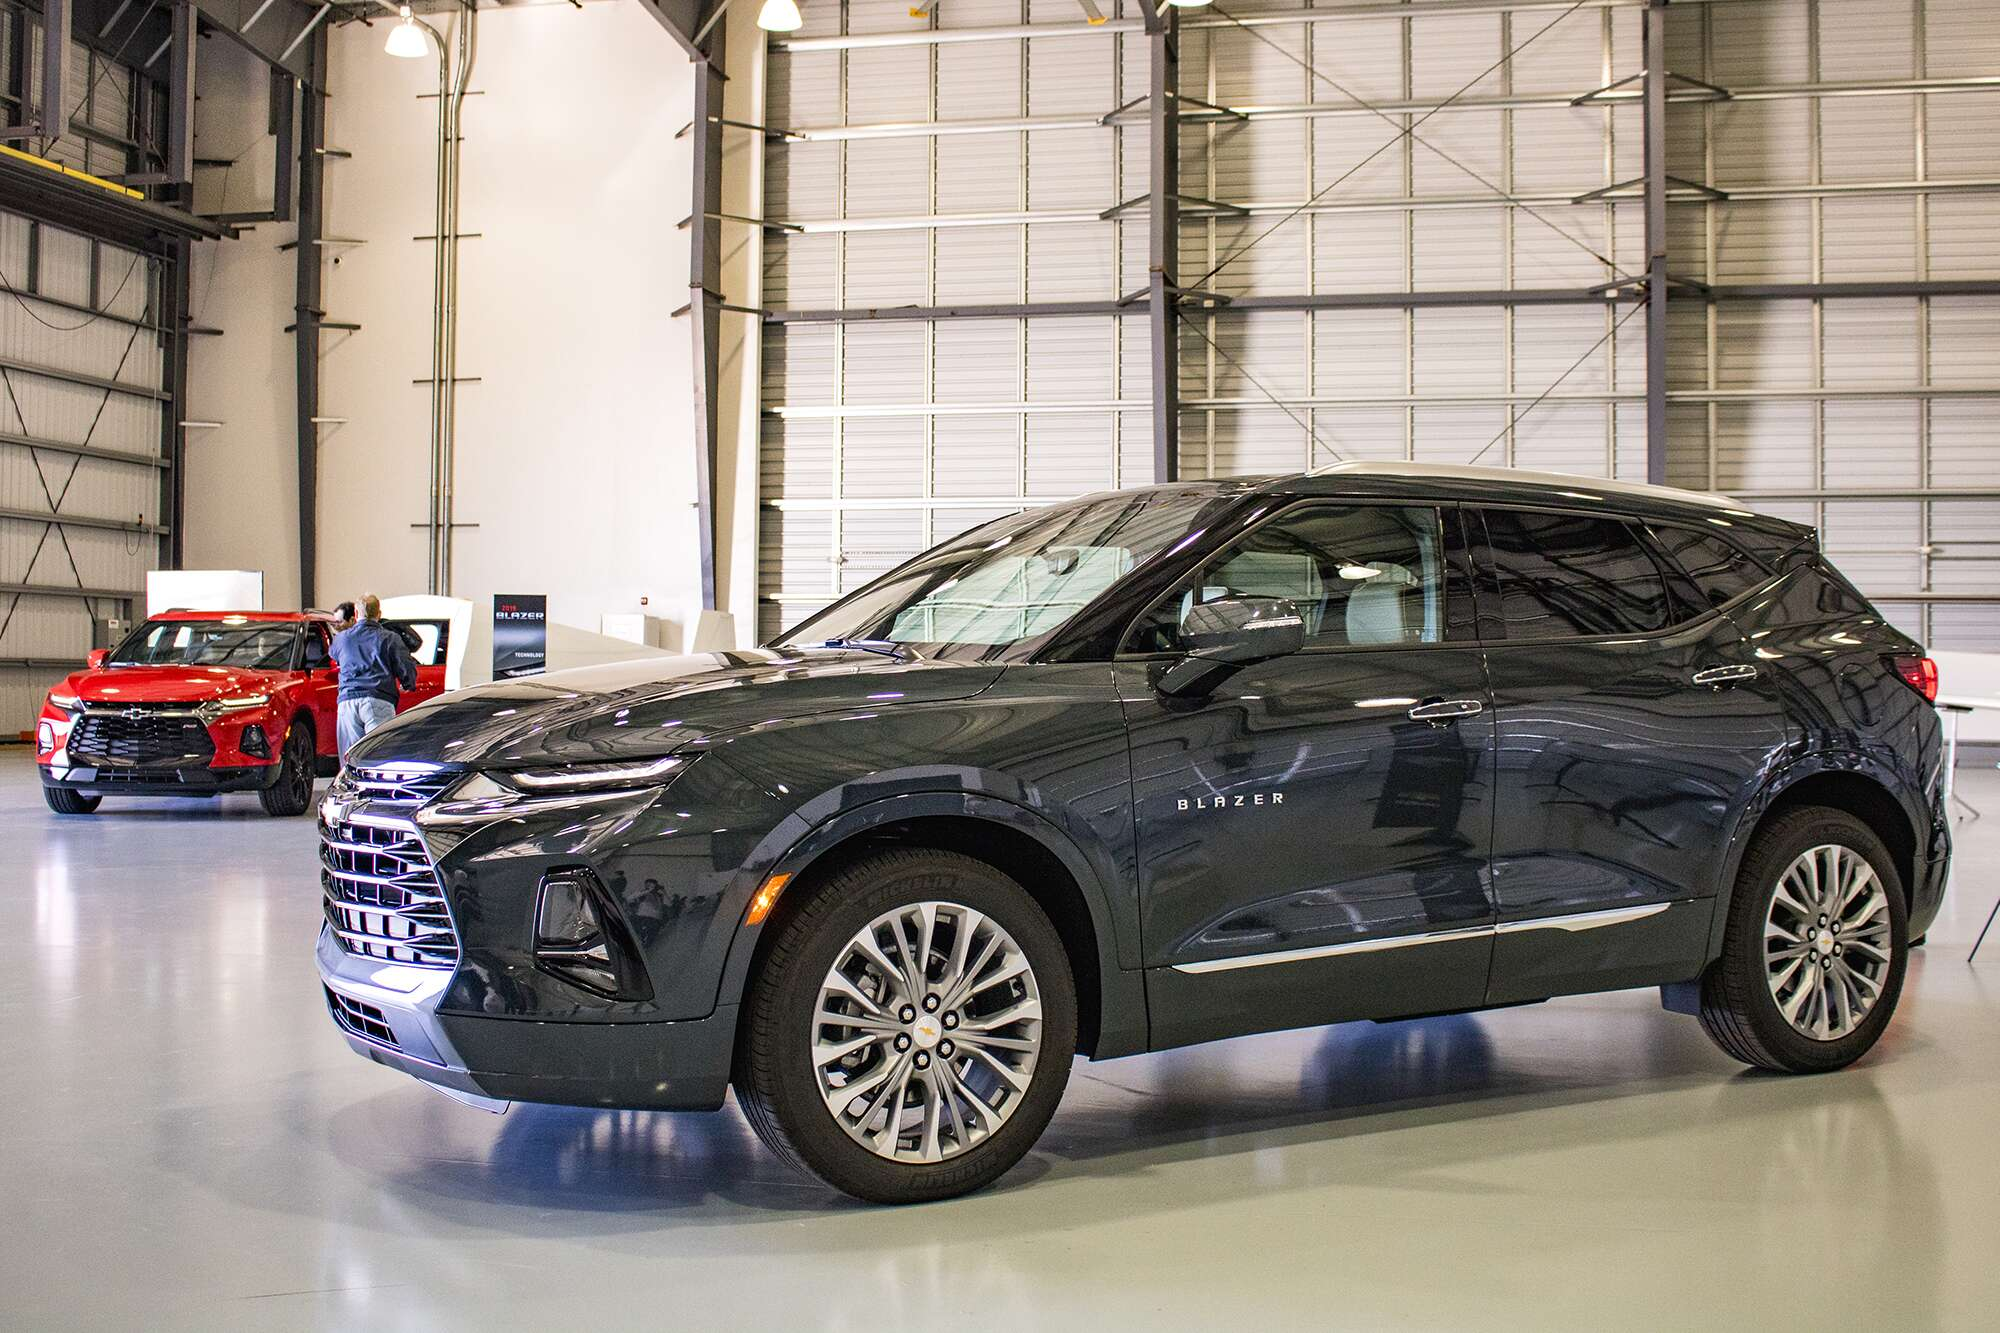 2019 Chevrolet Blazer First Drive Review: A Crossover ...